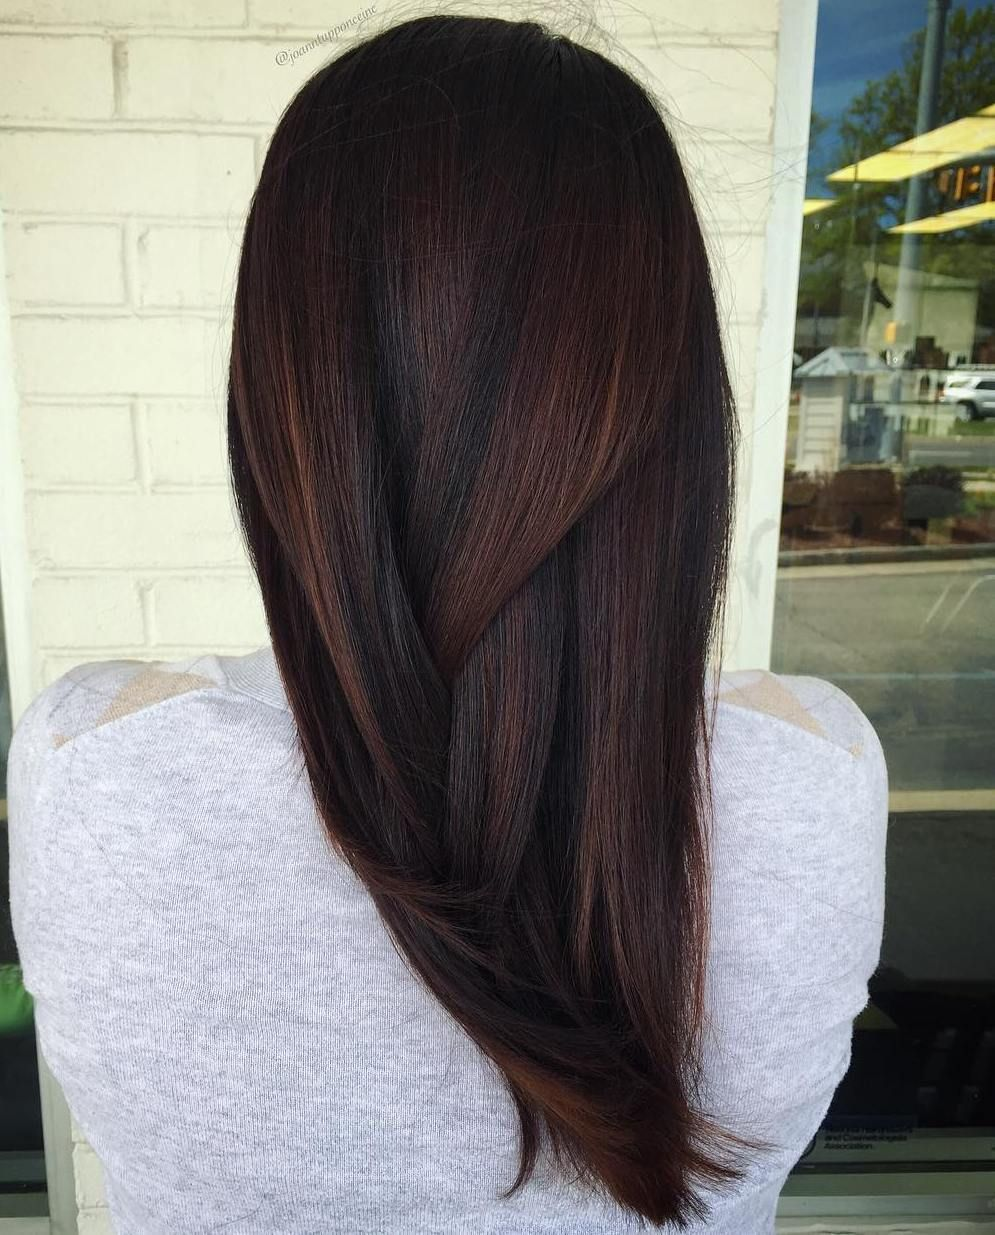 60 Chocolate Brown Hair Color Ideas For Brunettes Brown Hair Dye Chocolate Brown Hair Dye Long Hair Styles